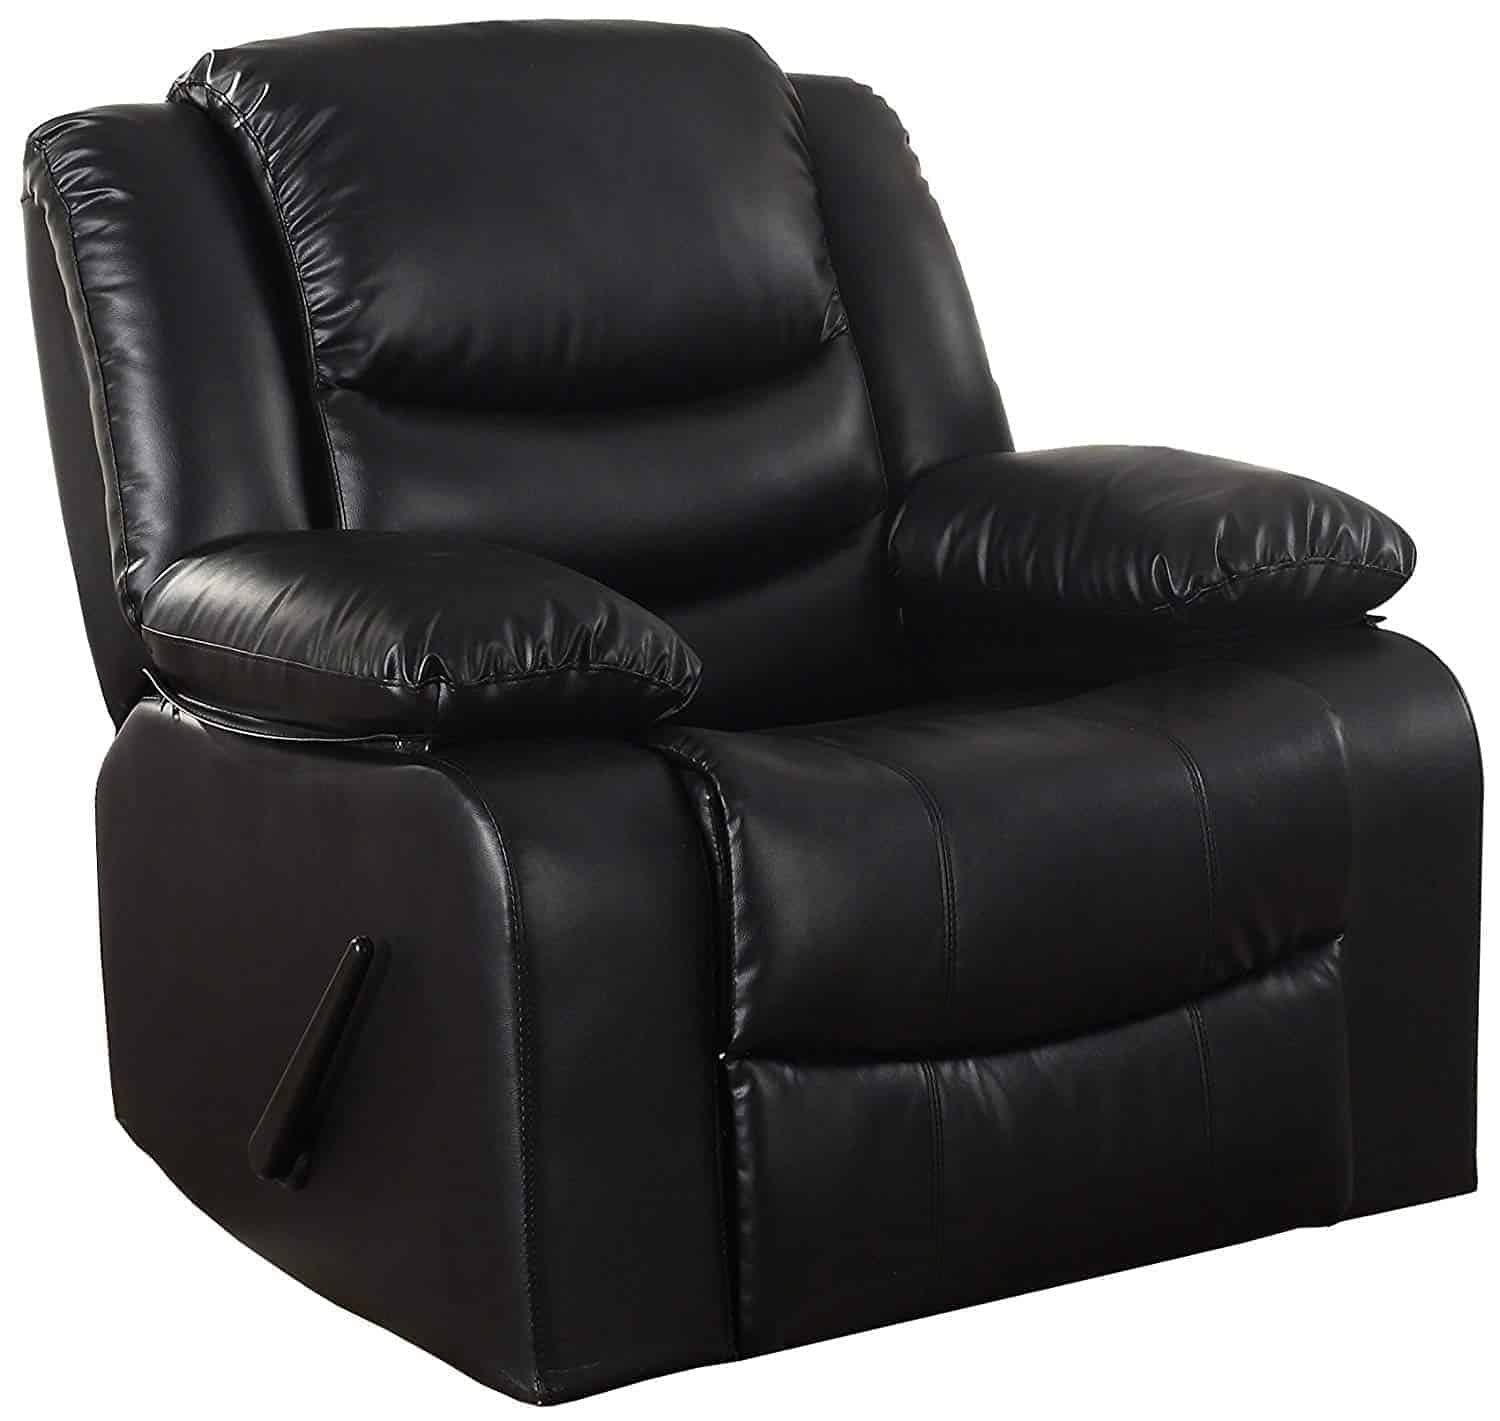 Best recliners for elderly people